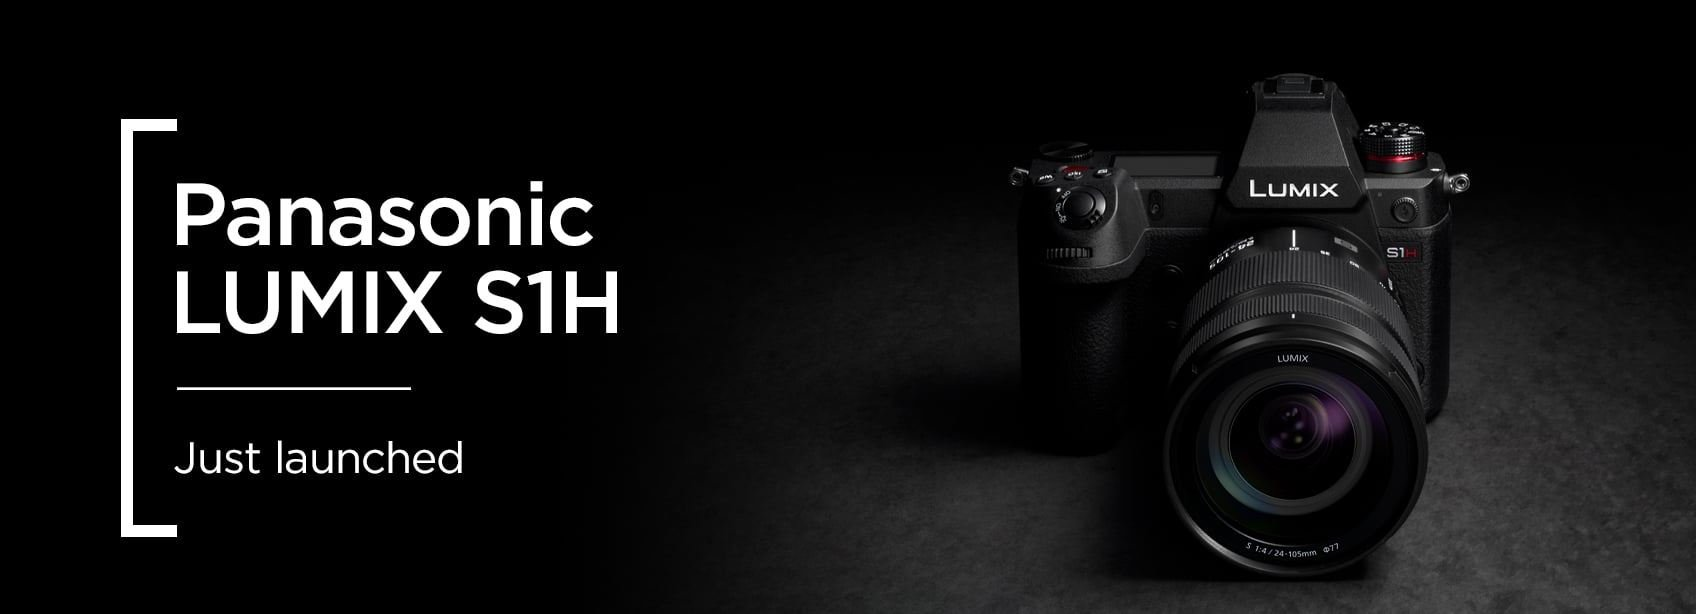 Panasonic LUMIX S1H - Just launched